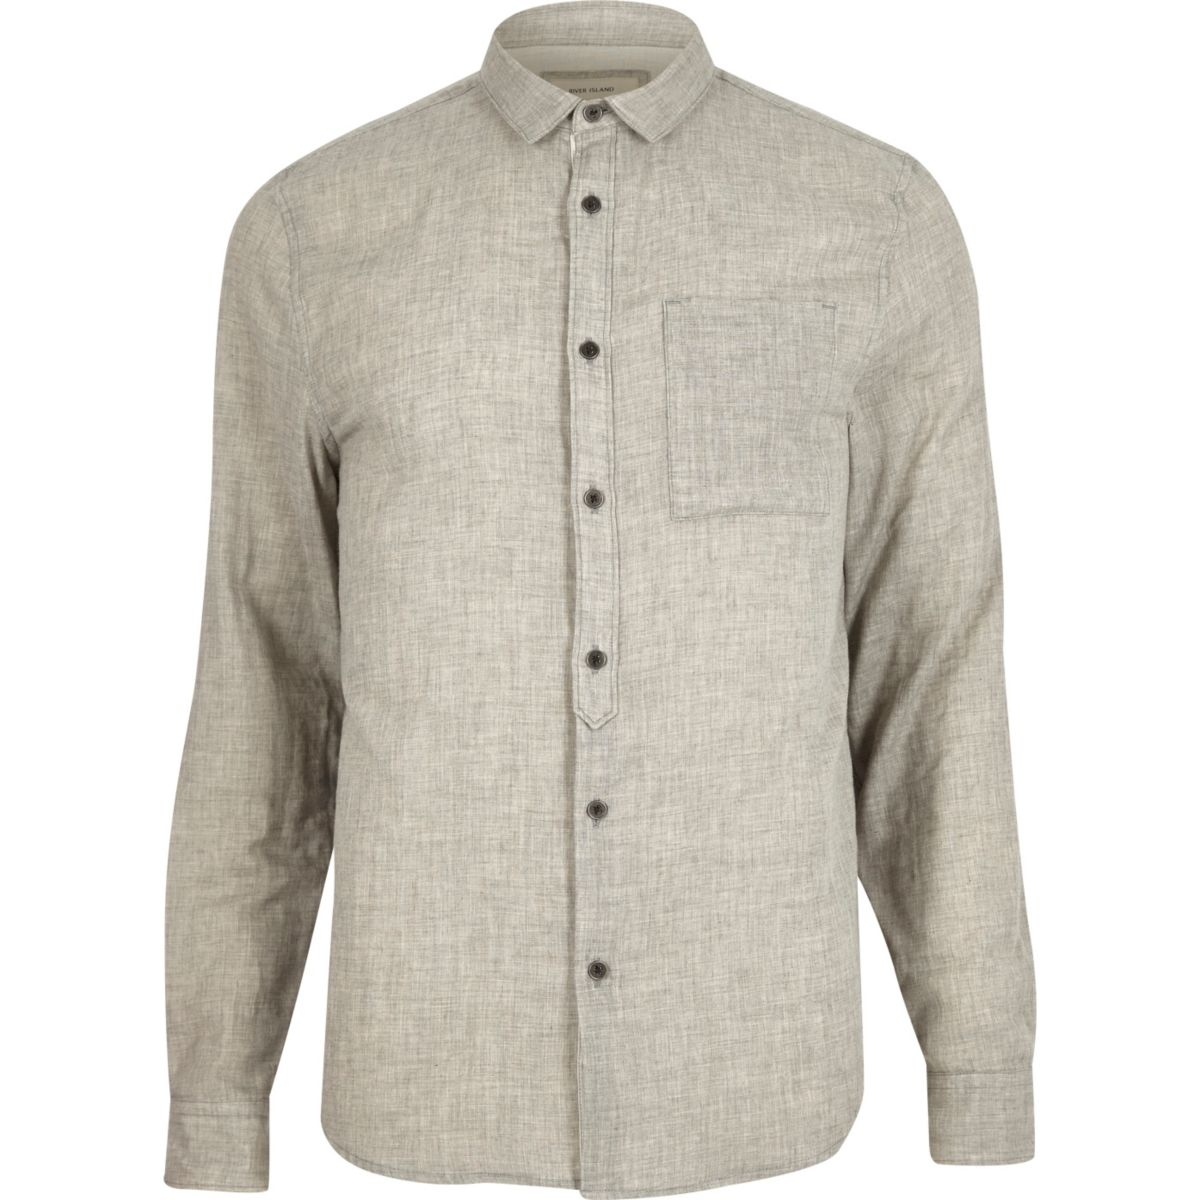 Grey marl shirt